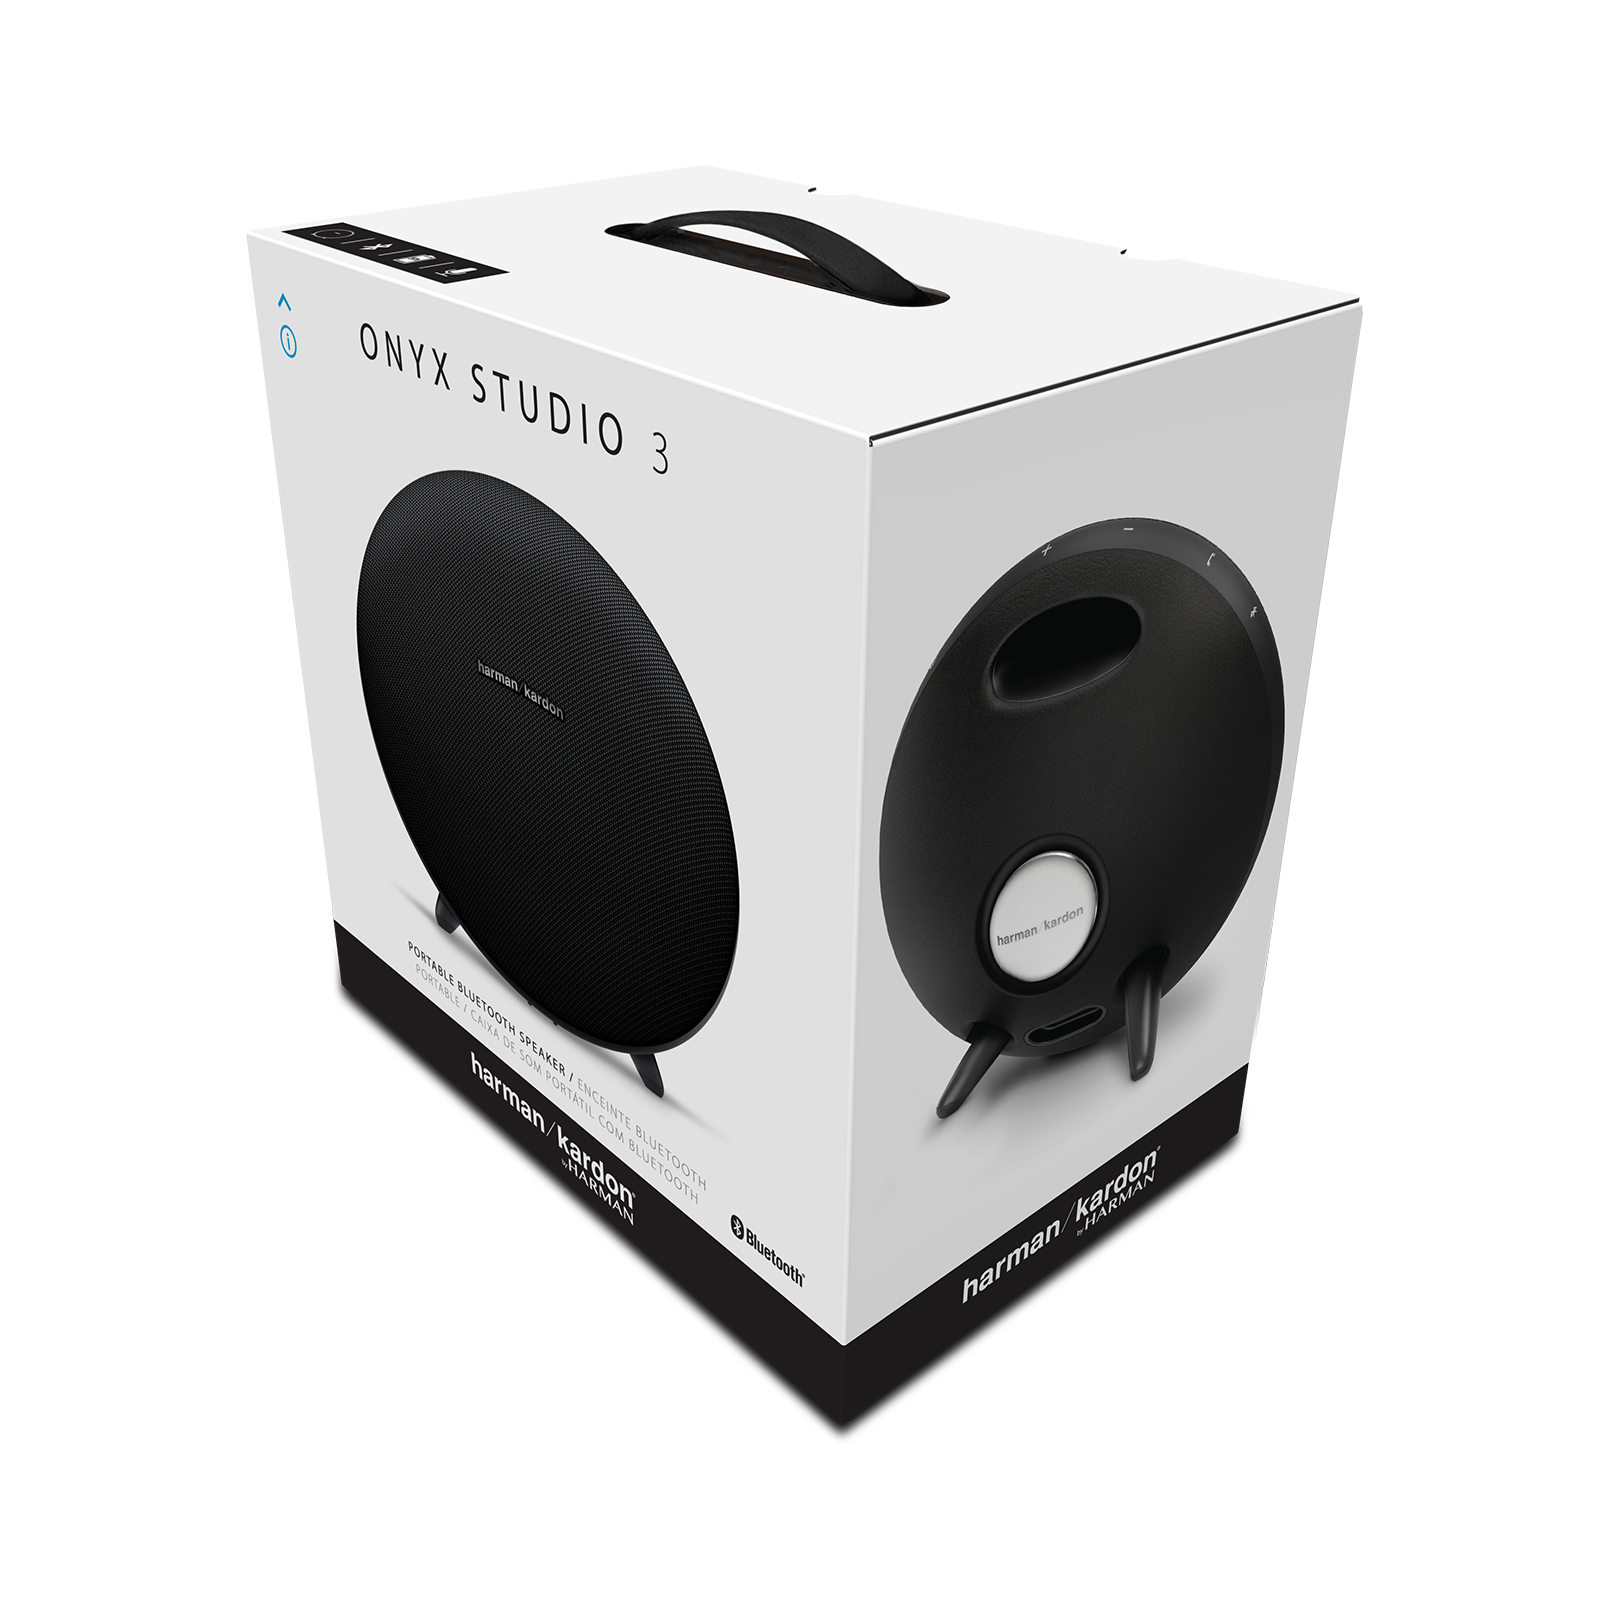 Onyx Studio 3 High End Portable Bluetooth Speaker Harman Kardon Go Play Mini Black Spec Sheet En